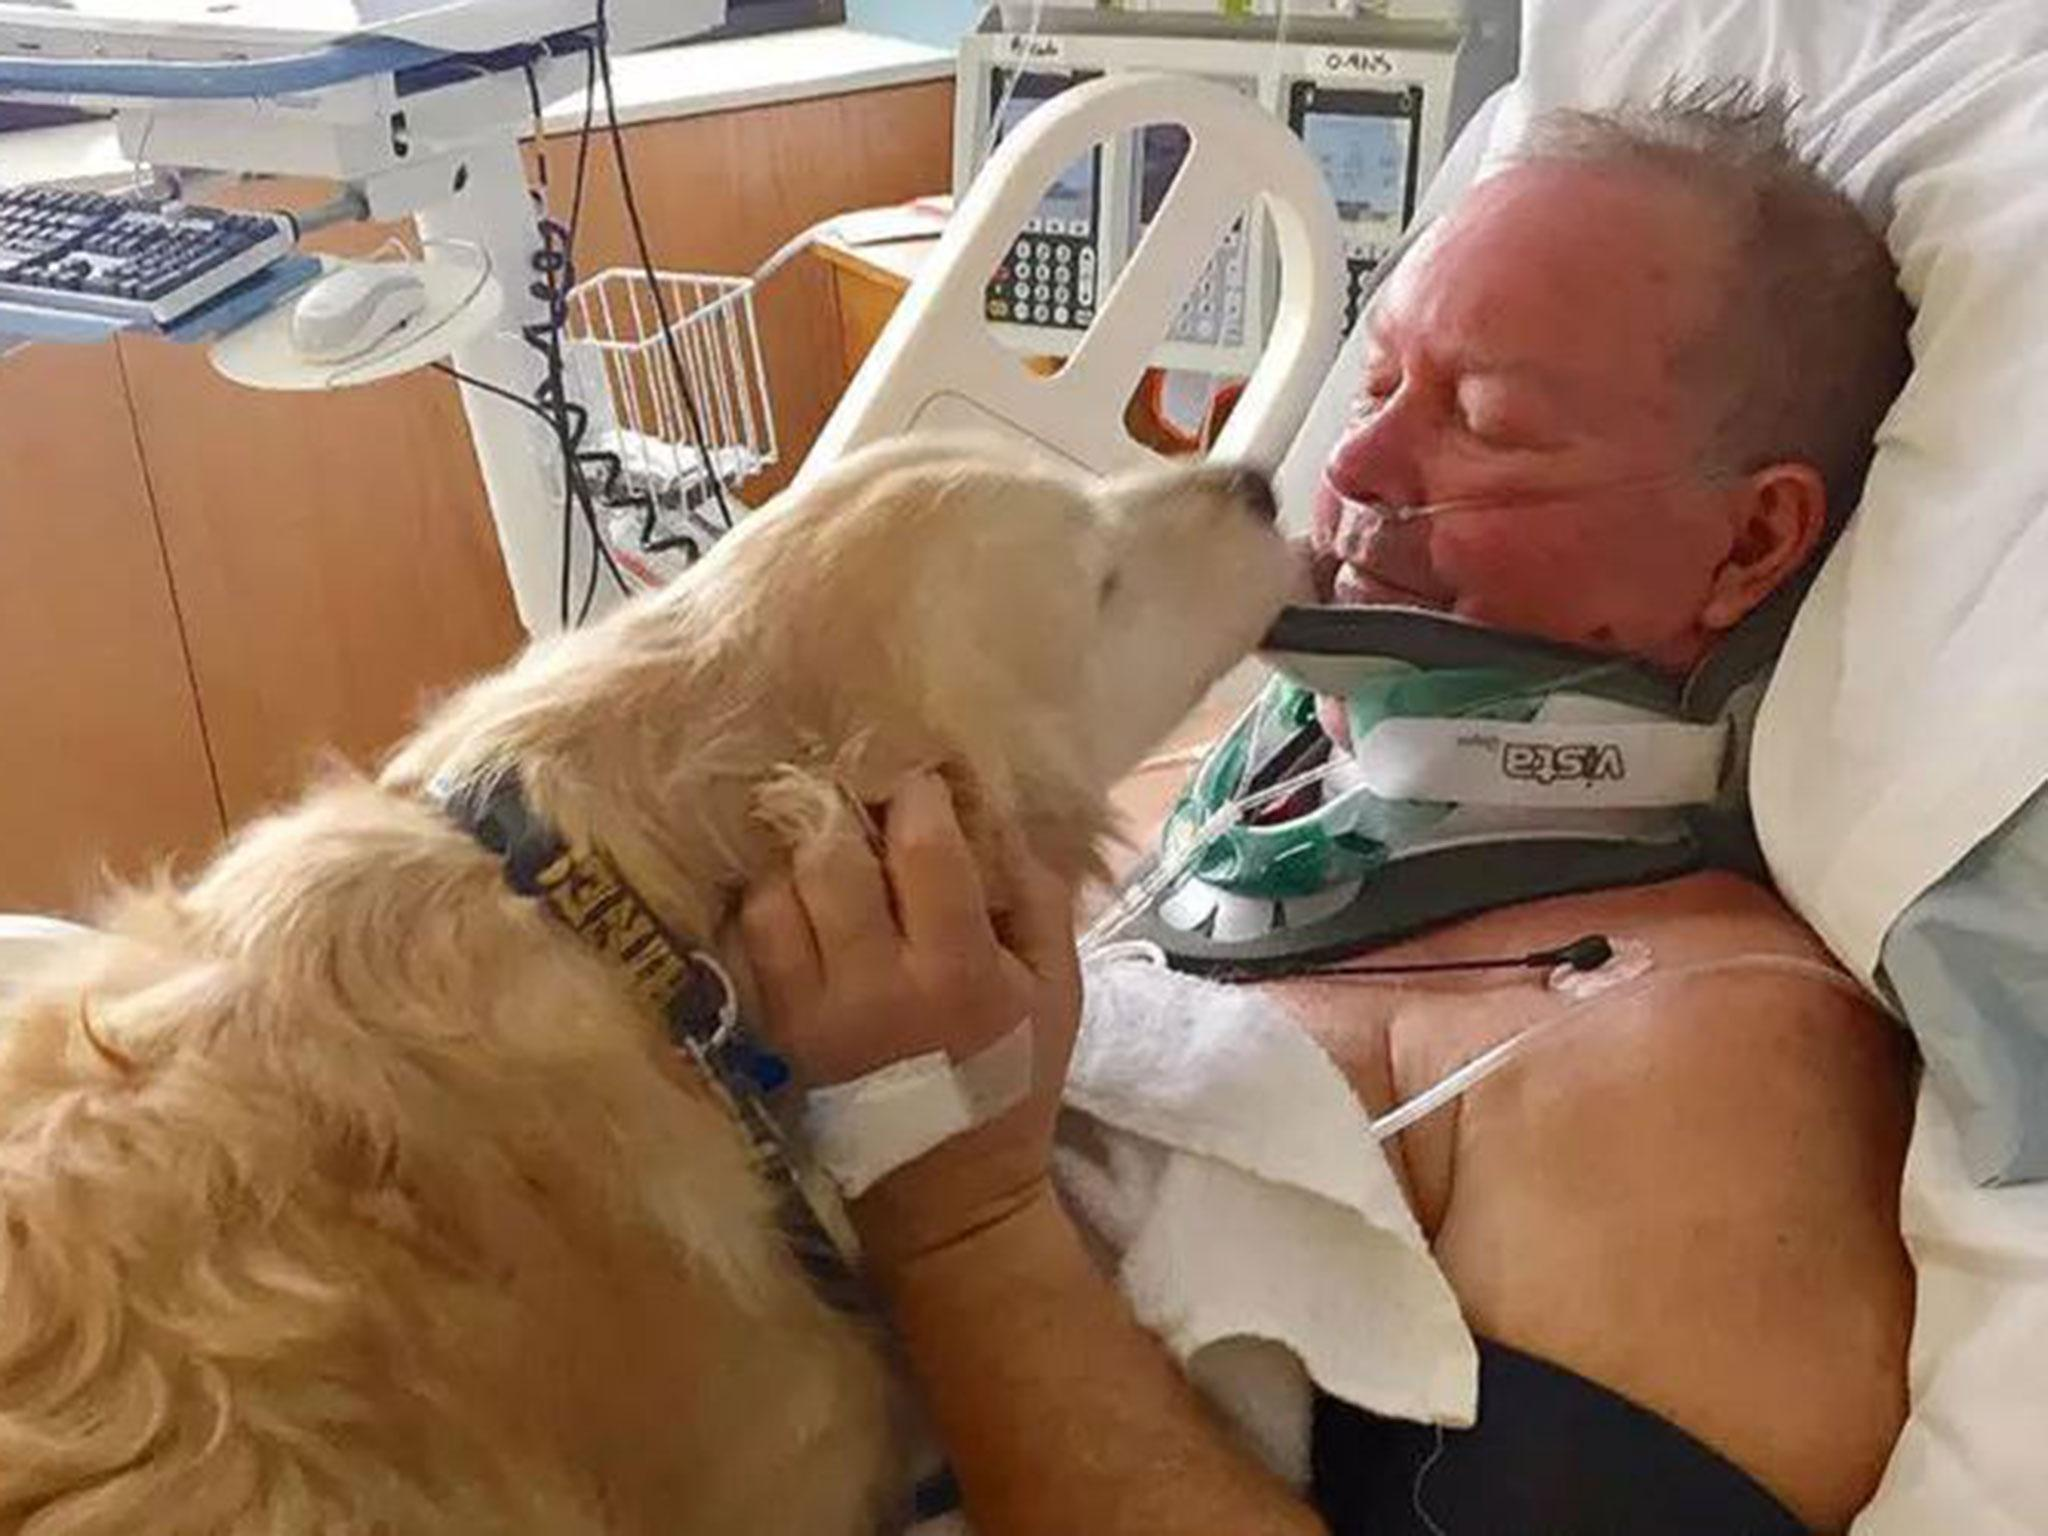 This Dog Saving Her Owners Life During a Seizure is The Most Powerful Thing Youll See All Day